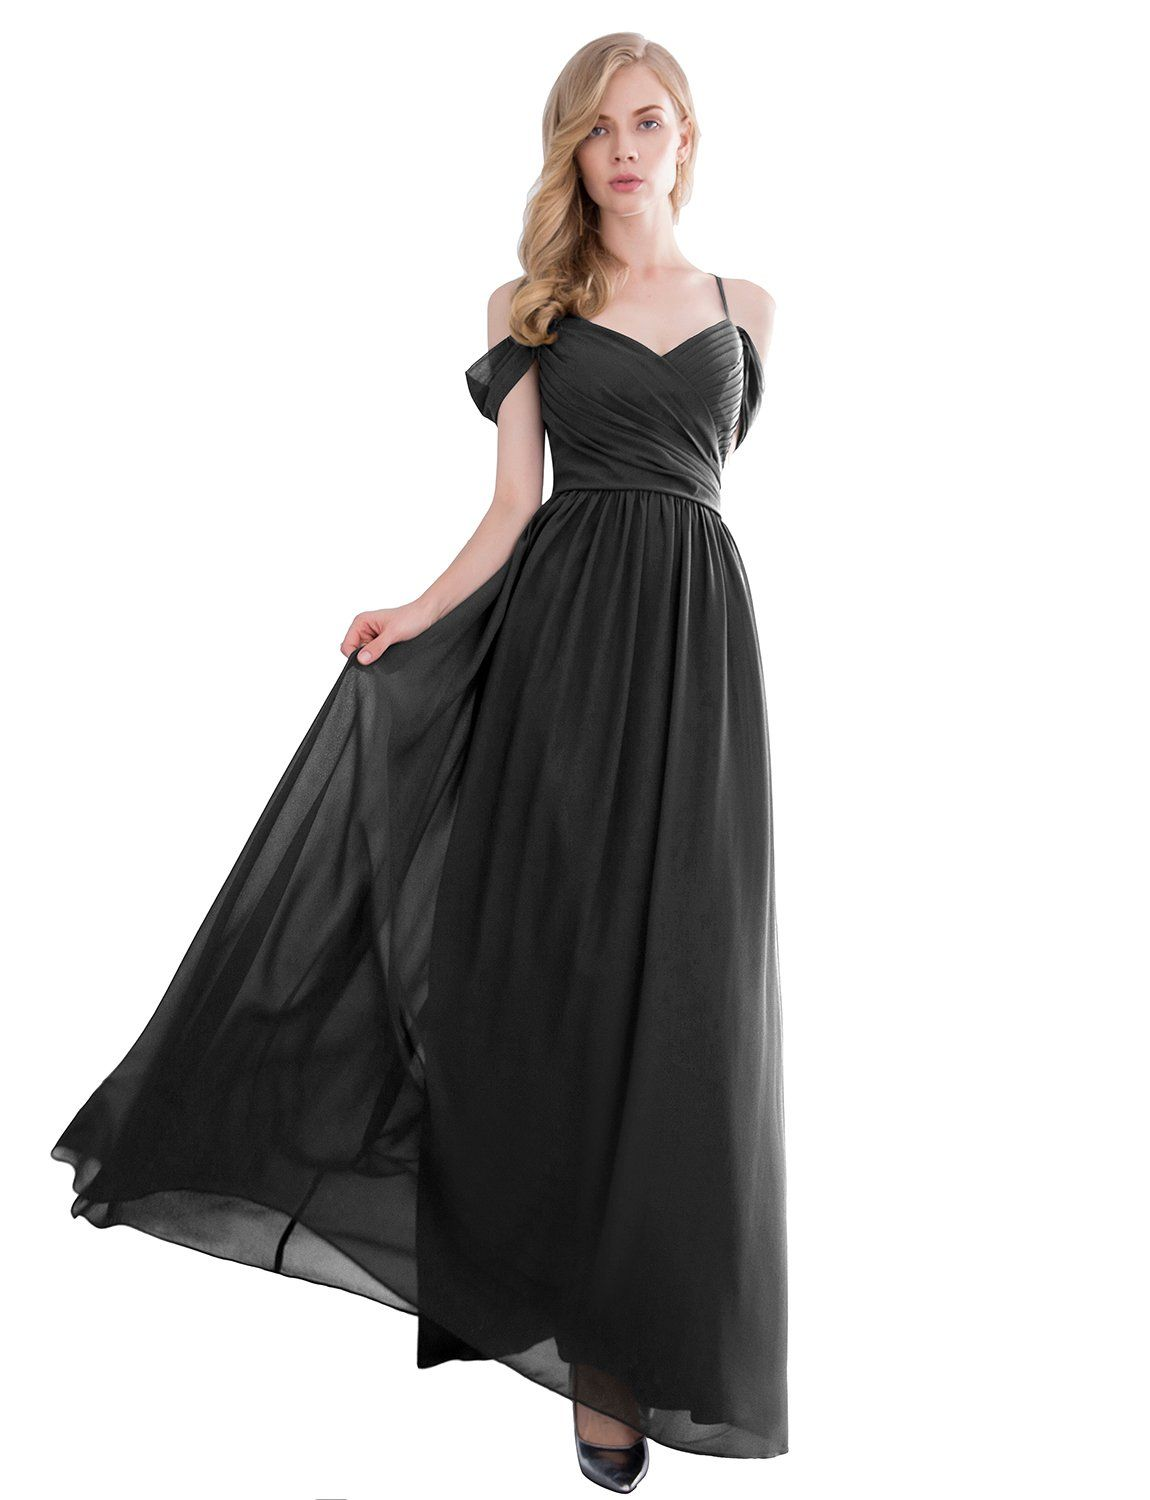 Gardenwed gorgeous off the shoulder long prom dress chiffon